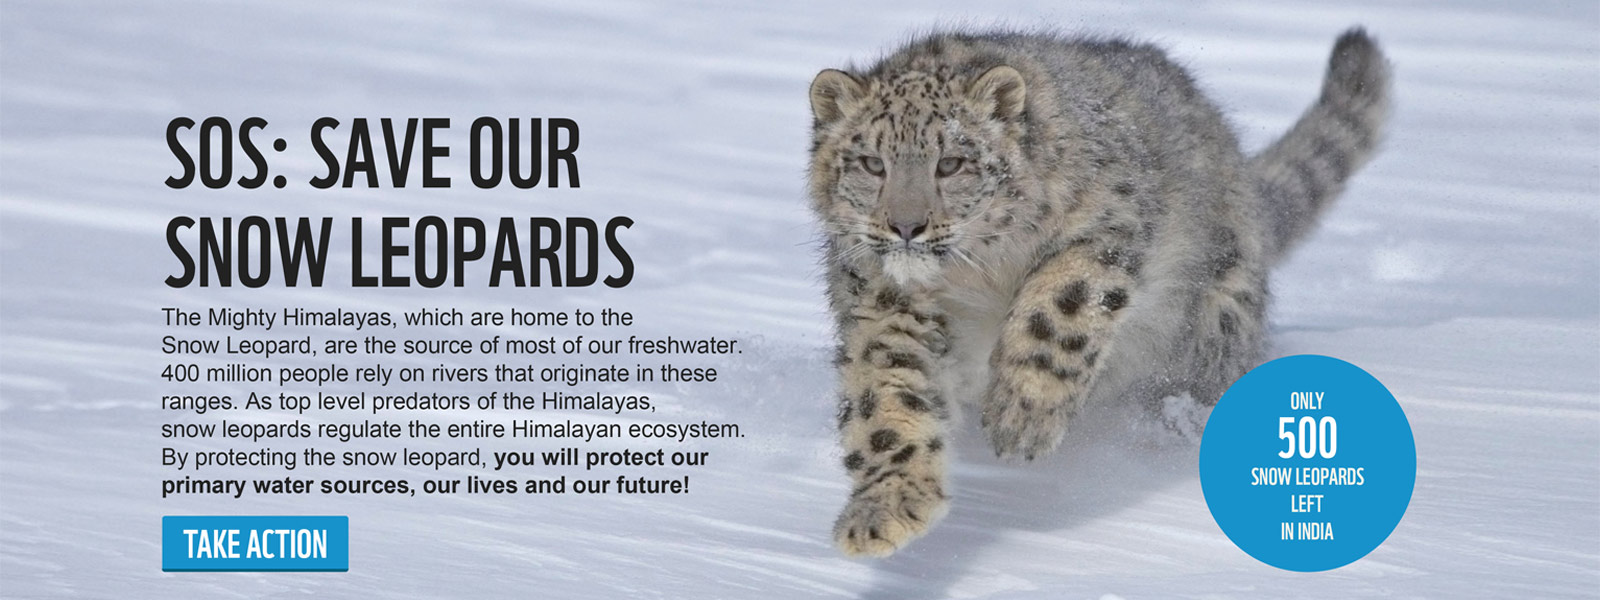 SAVE OUR SNOW LEOPARD - The Mighty Himalayas, which are home to the Snow Leopard, are the source of most of our freshwater. 400 million people rely on rivers that originate in these Ranges. As top level predators of the Himalayas, snow leopards regulate the entire Himalayan ecosystem. By protecting the snow leopard, you will protect our primary water sources, our lives and our future!